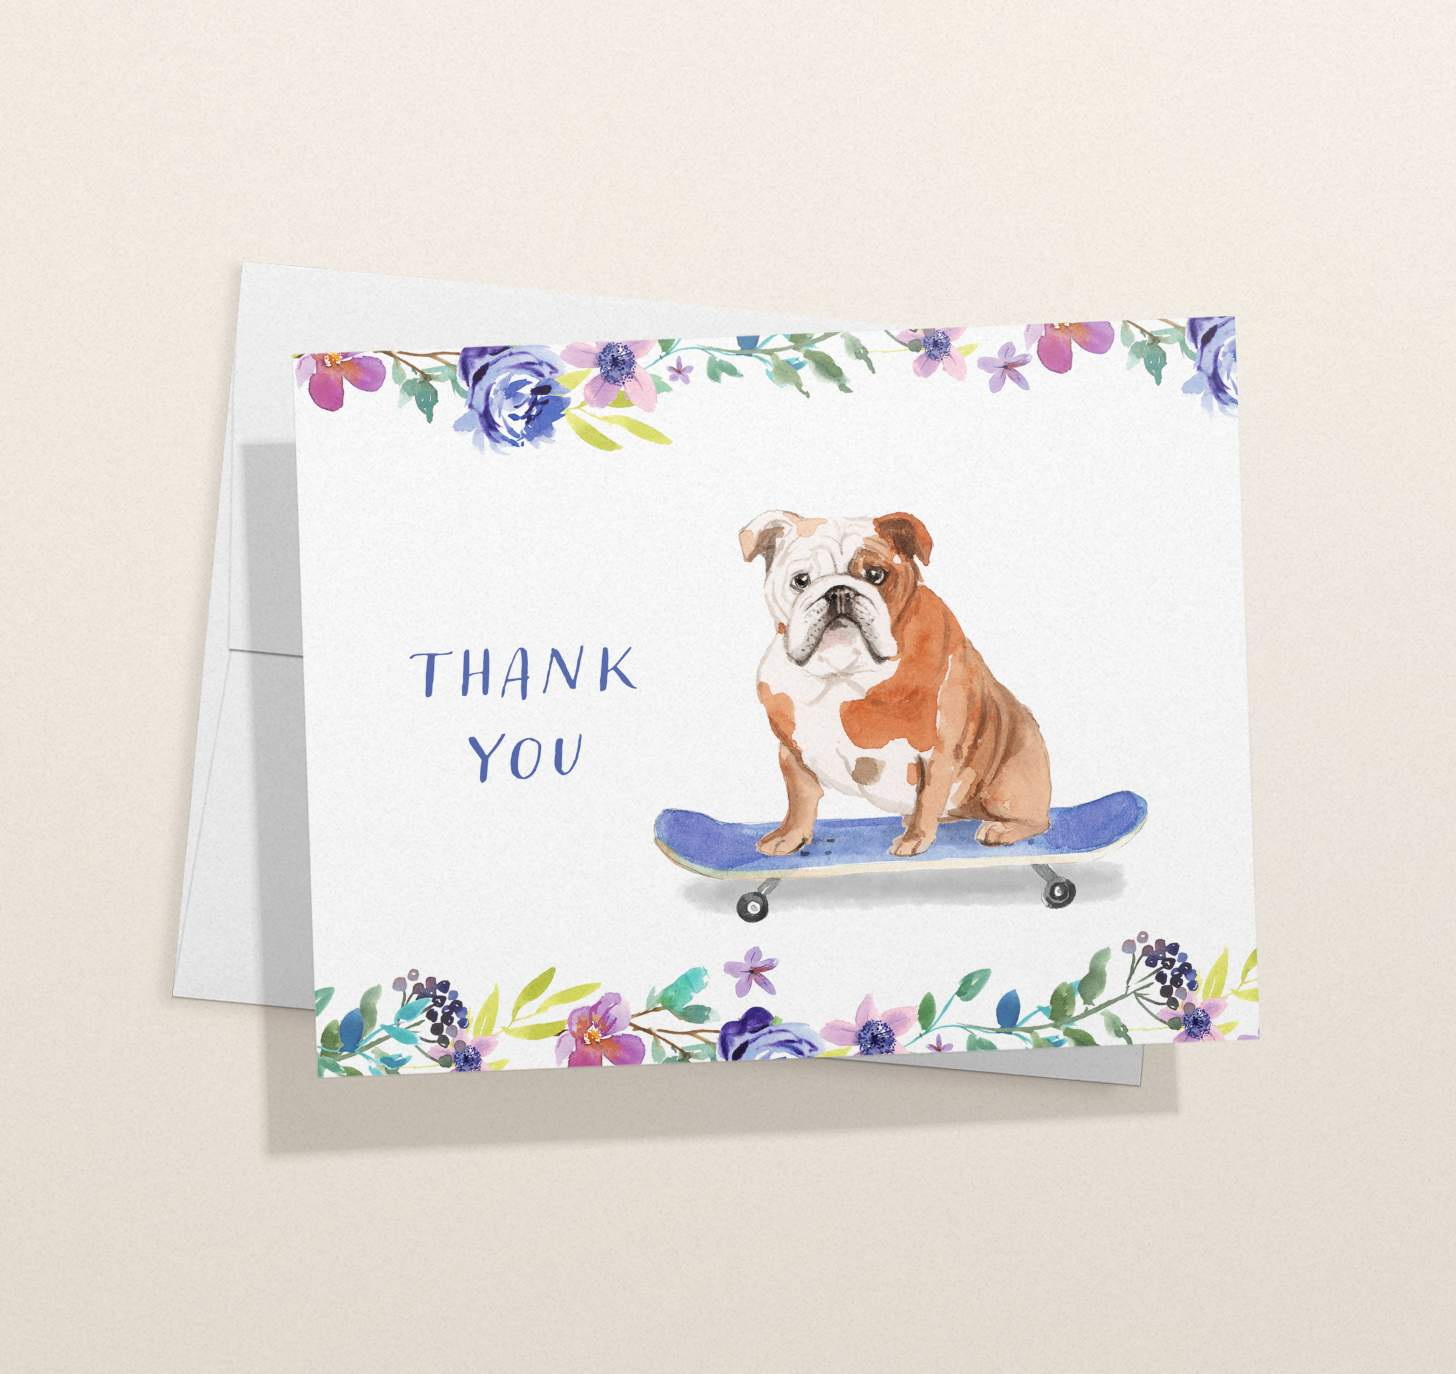 Brown and white dog riding skateboard design card with envelope